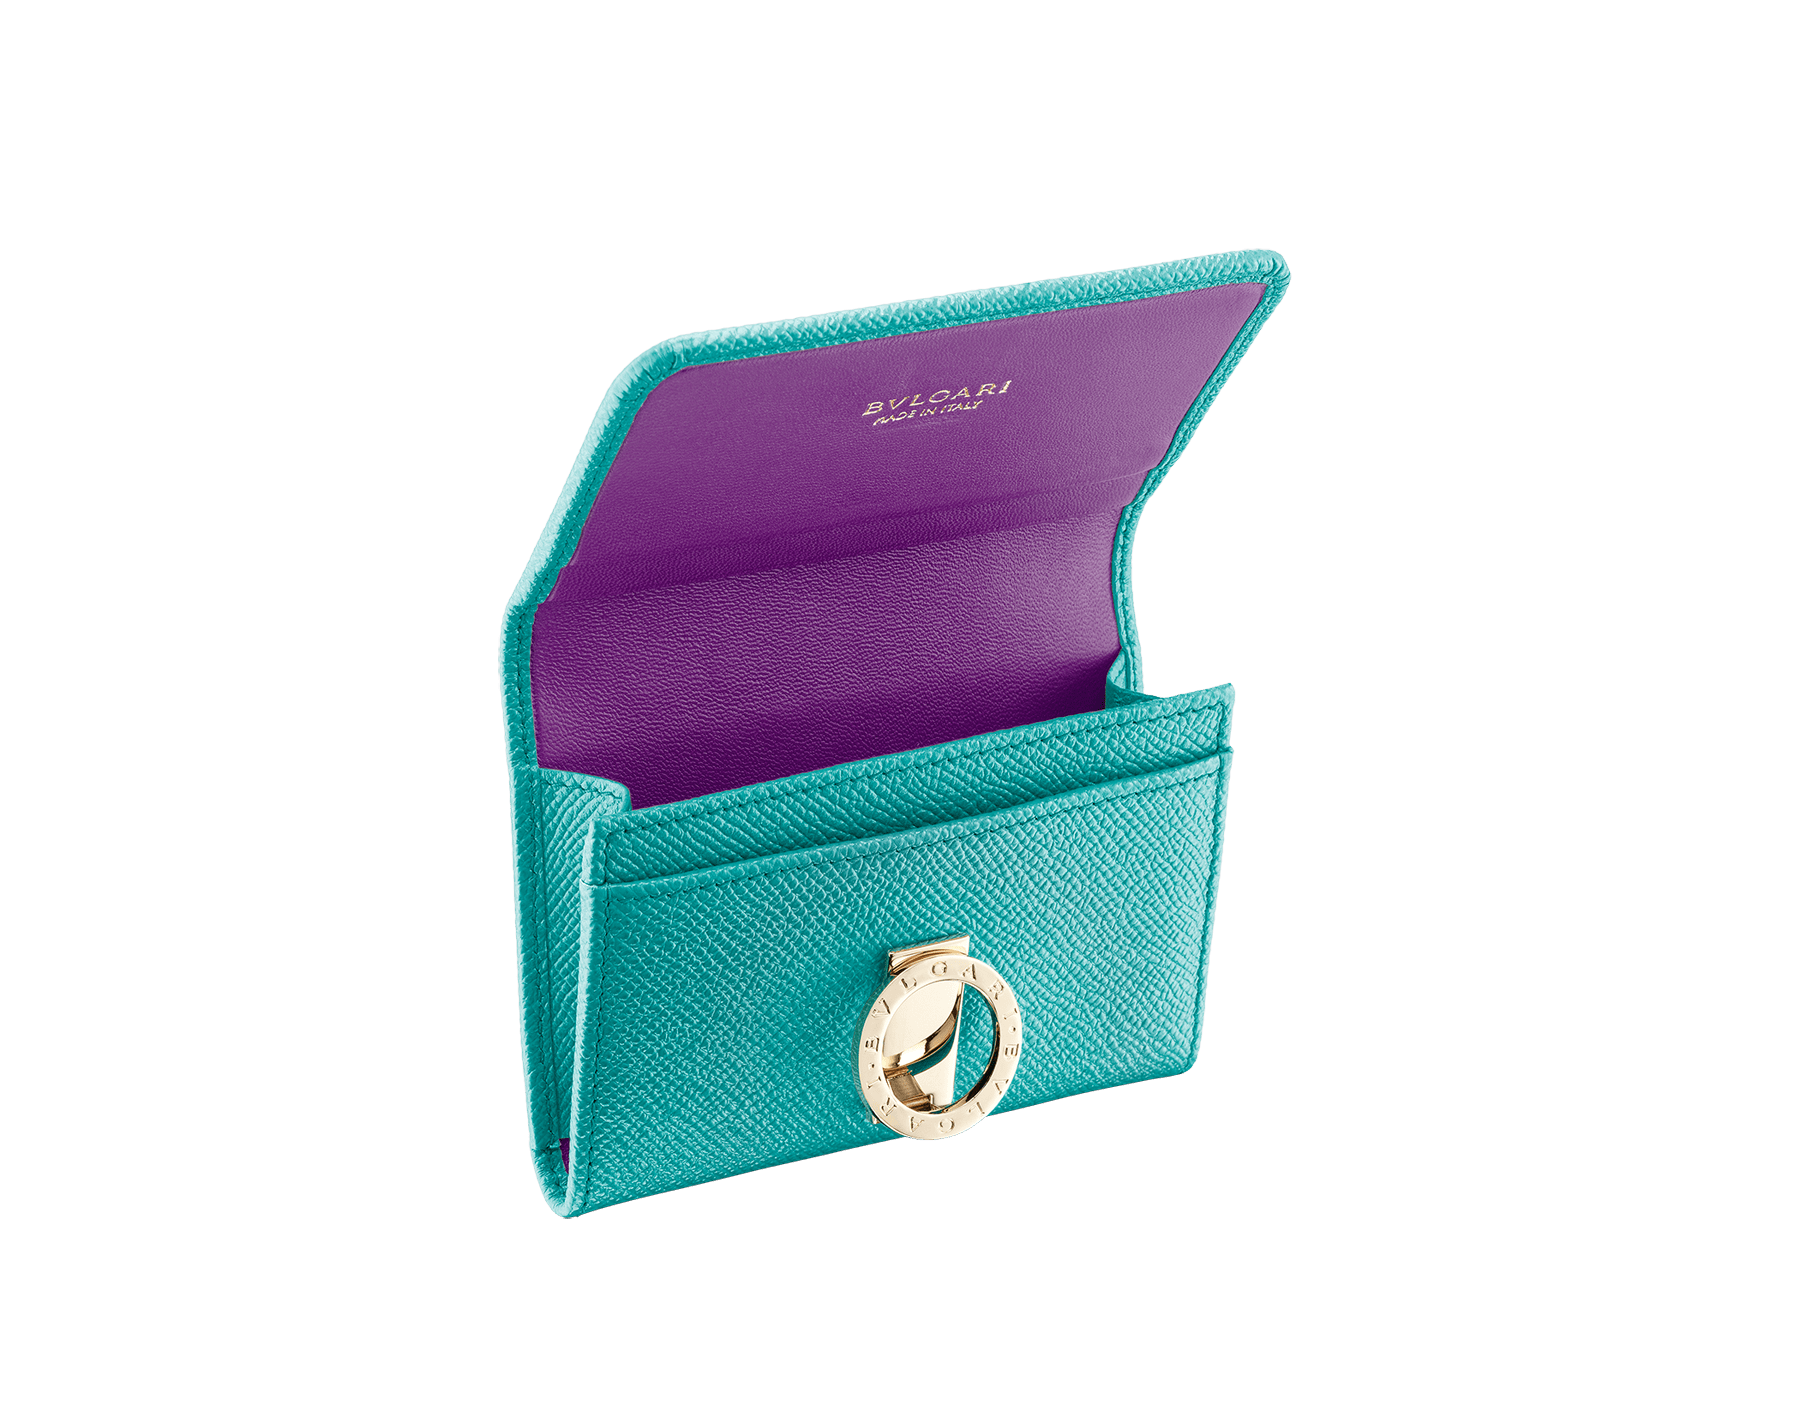 BVLGARI BVLGARI business card holder in carmine jasper grain calf leather and jazzy tourmaline nappa leather. Iconic logo closure clip in light gold plated brass 579-BC-HOLDER-BGCLb image 2